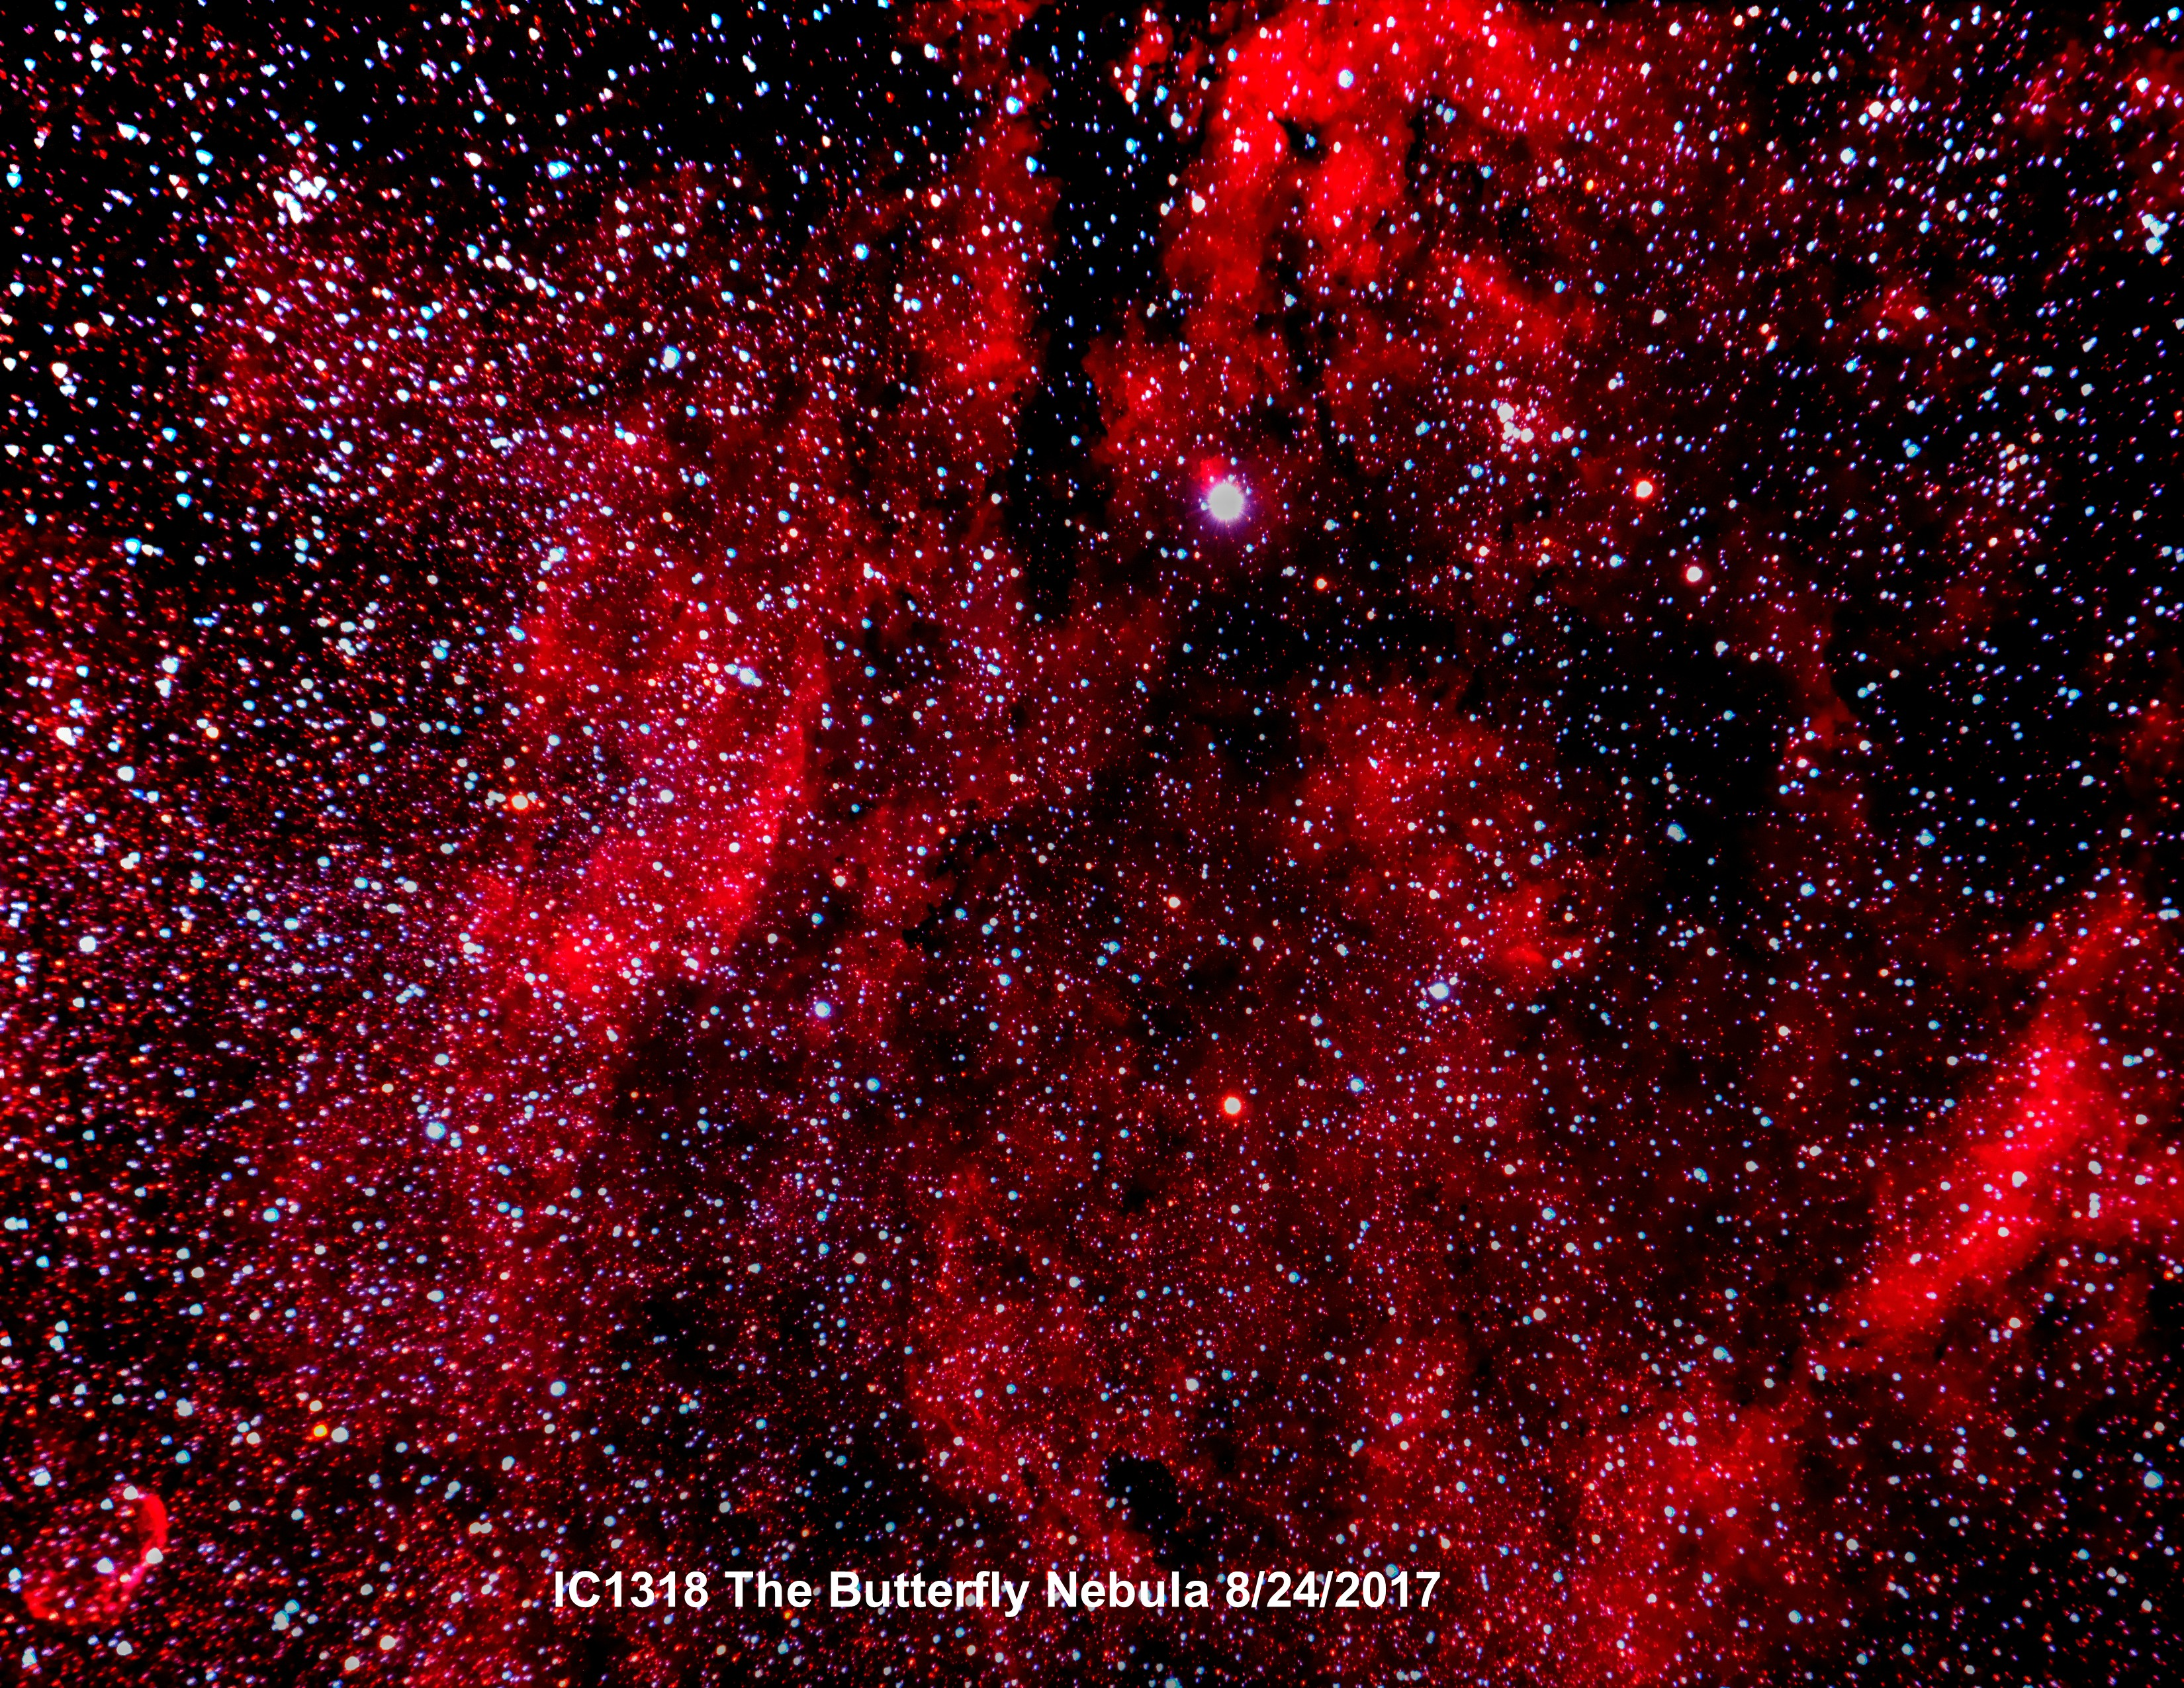 IC 1318 Butterfly